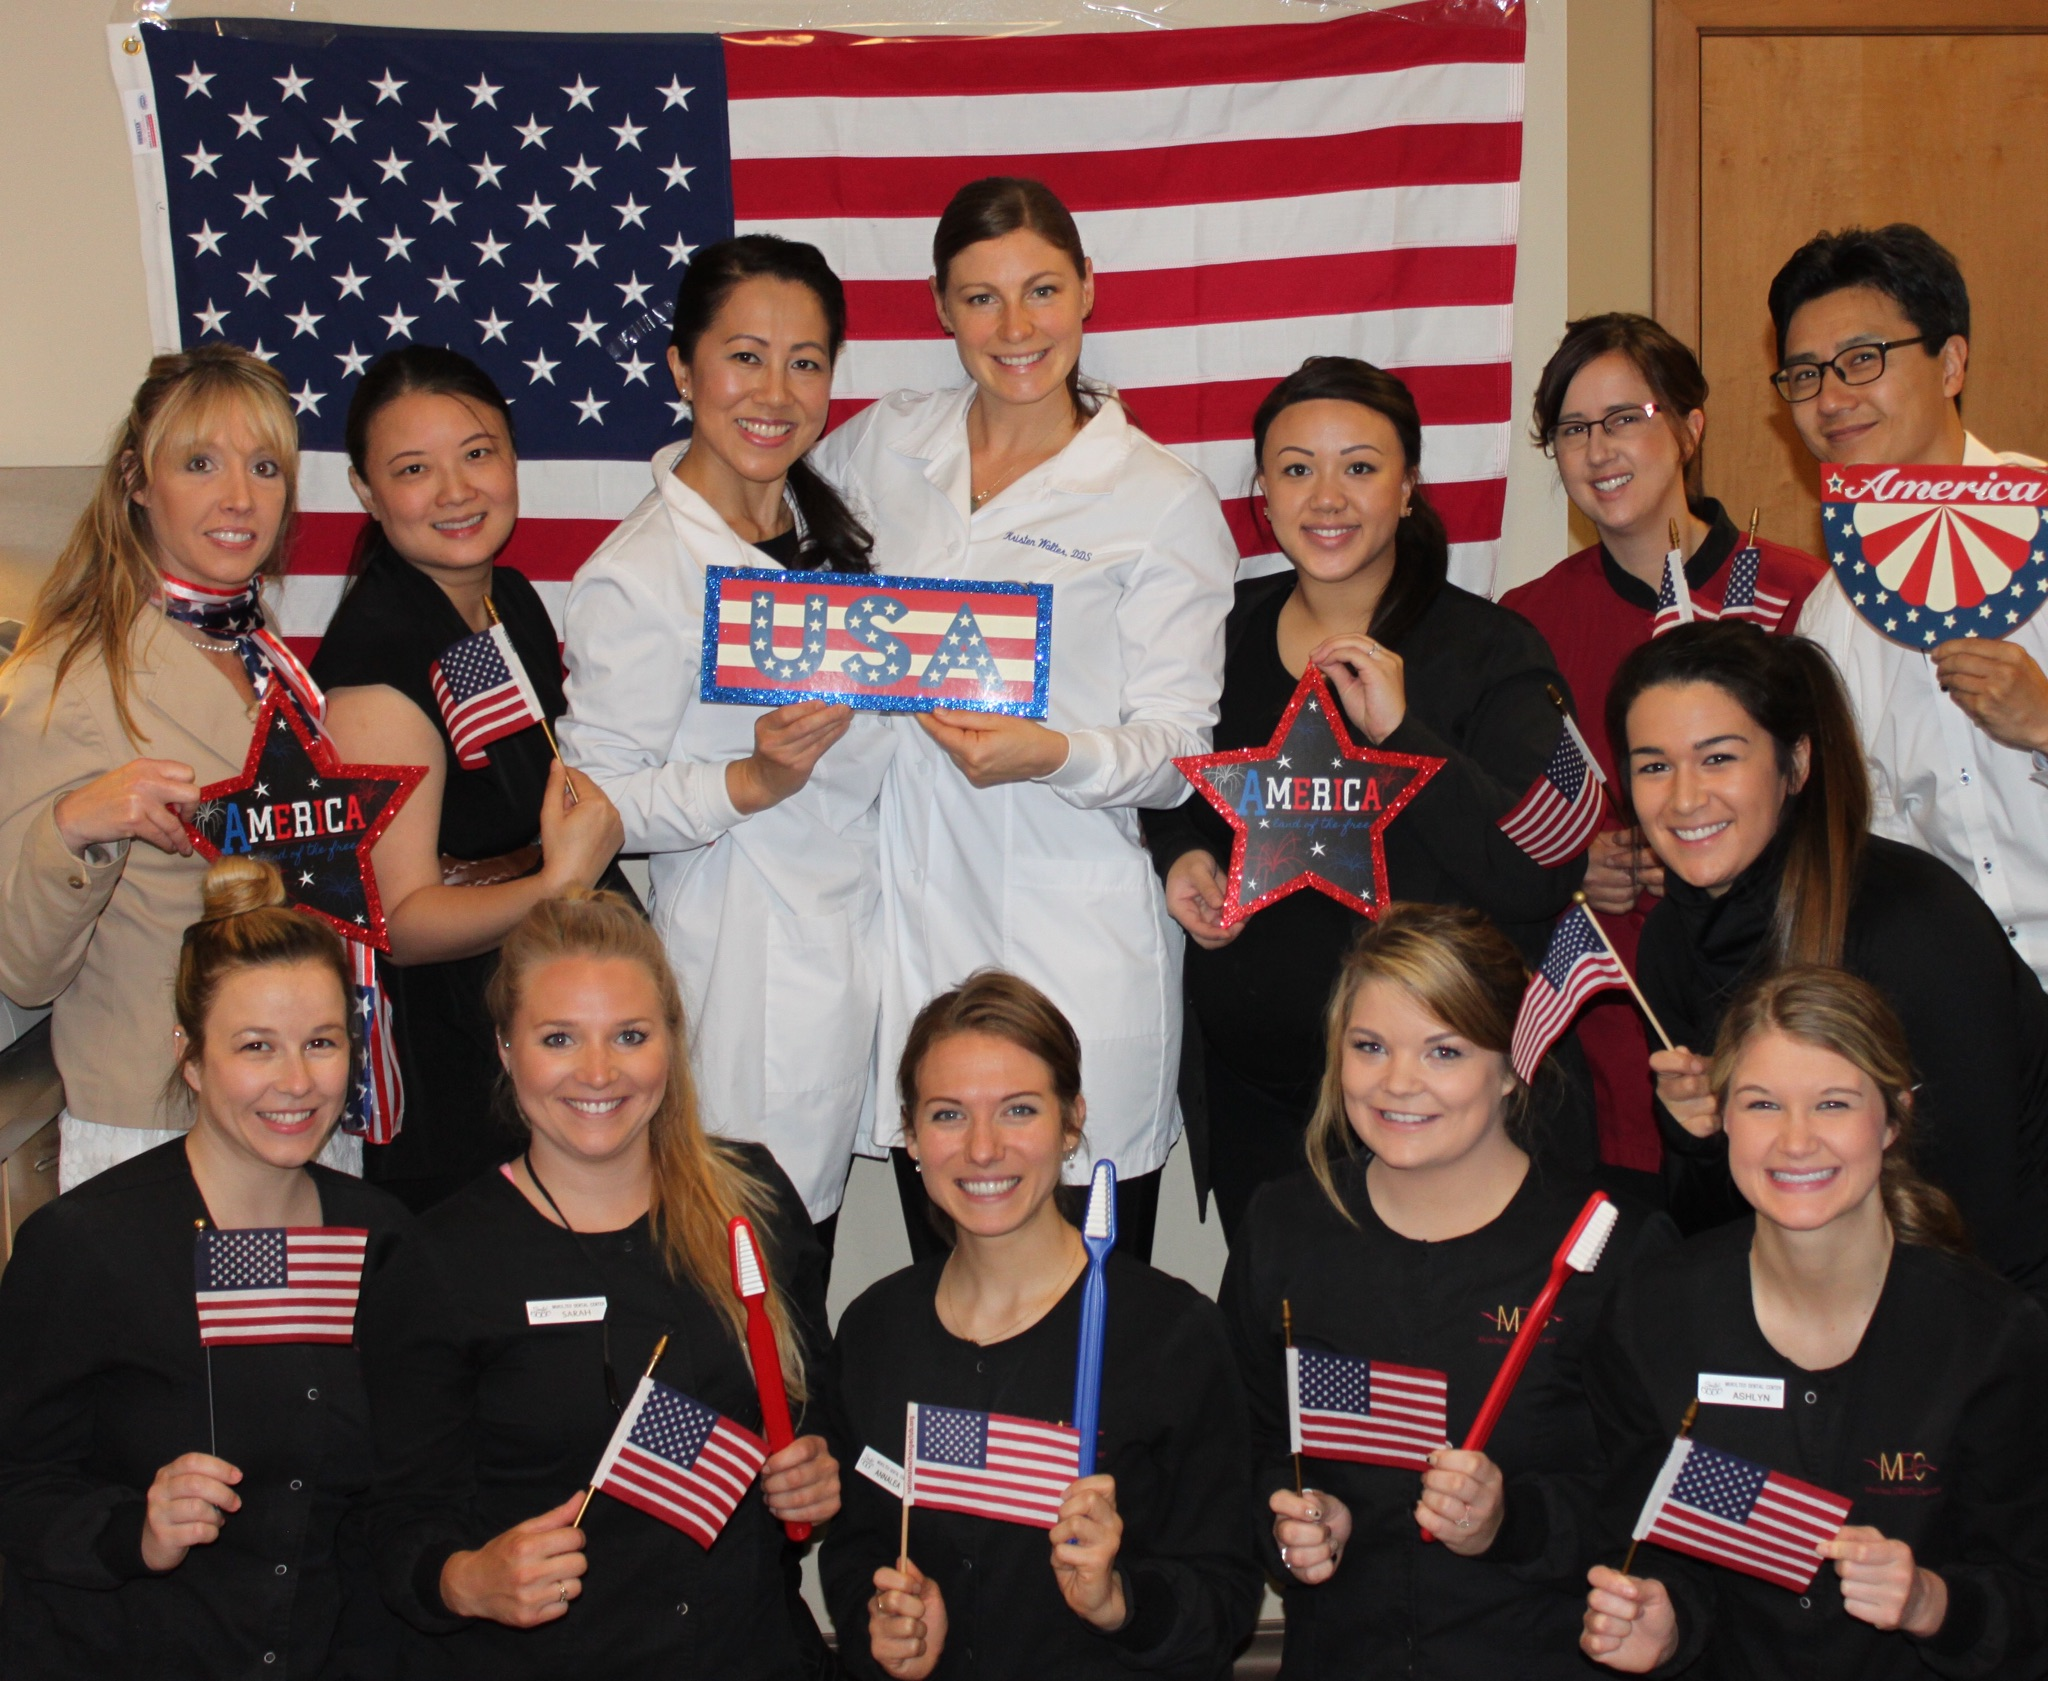 Mukilteo Dental Center - Freedom Day 2015